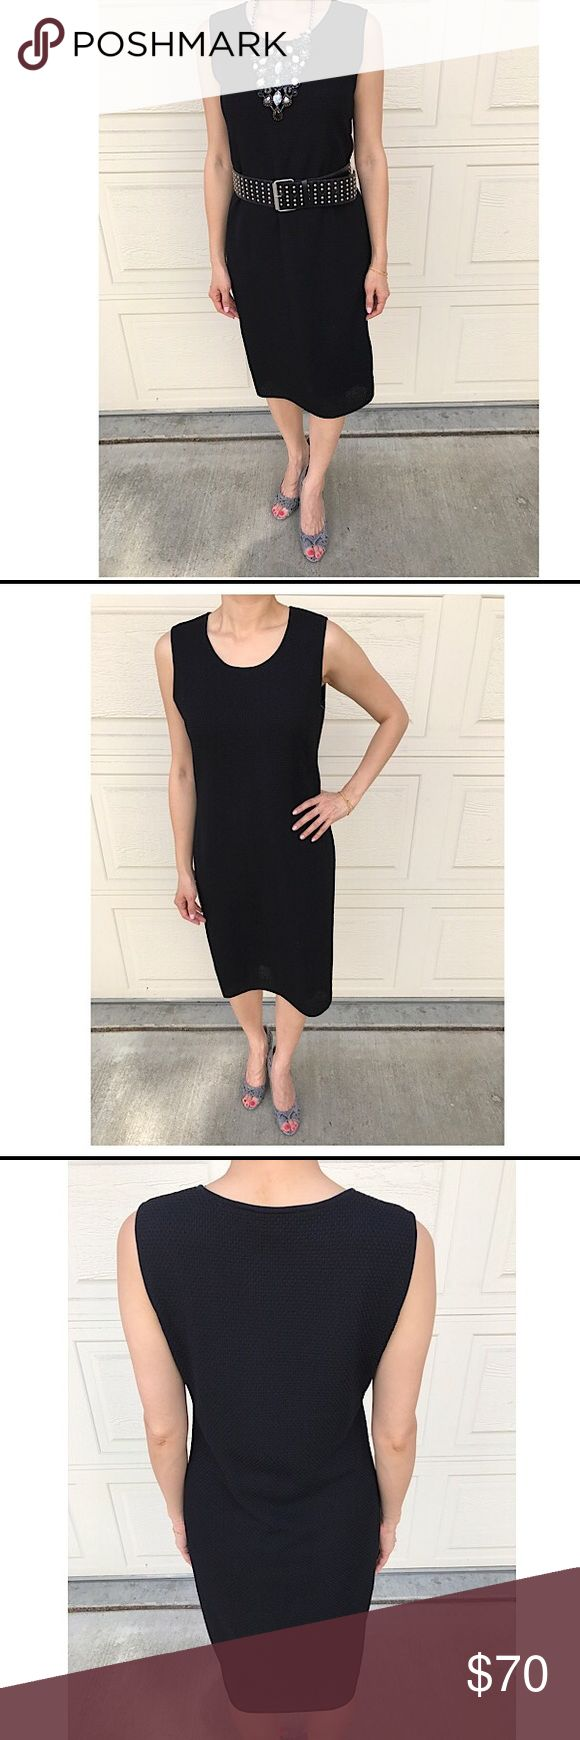 NIEMEN MARCUS MISOOK black sleeveless dress NIEMEN MARCUS MISOOK black sleeveless dress. Pull on style, no zipper. Fully lined, acrylic material, semi loosely fitted and stretchy. Made in Korea. Knee length. IMPECCABLE, LIKE NEW condition, no tears/holes.   NOTE: The COLE HAAN snakeskin heels are also for sale separately in my closet. Necklace and belt are got styling suggestions only and do not come with the dress. Misook Dresses